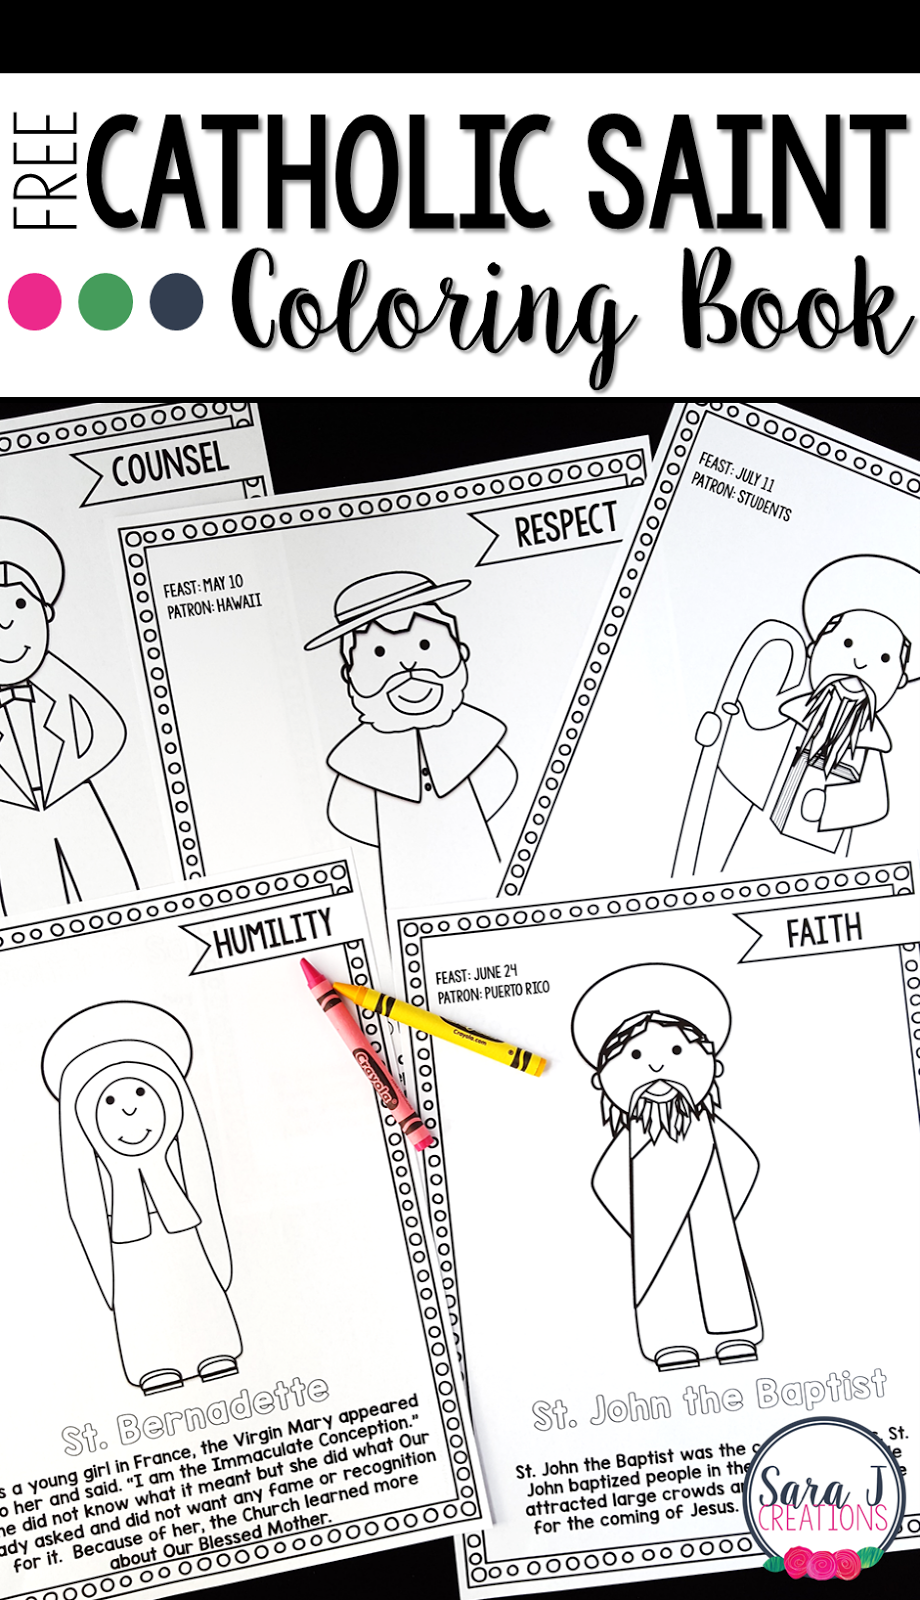 Catholic Saints Coloring Book - FREE sample.  Great way to teach the virtues through the lives of the Saints.